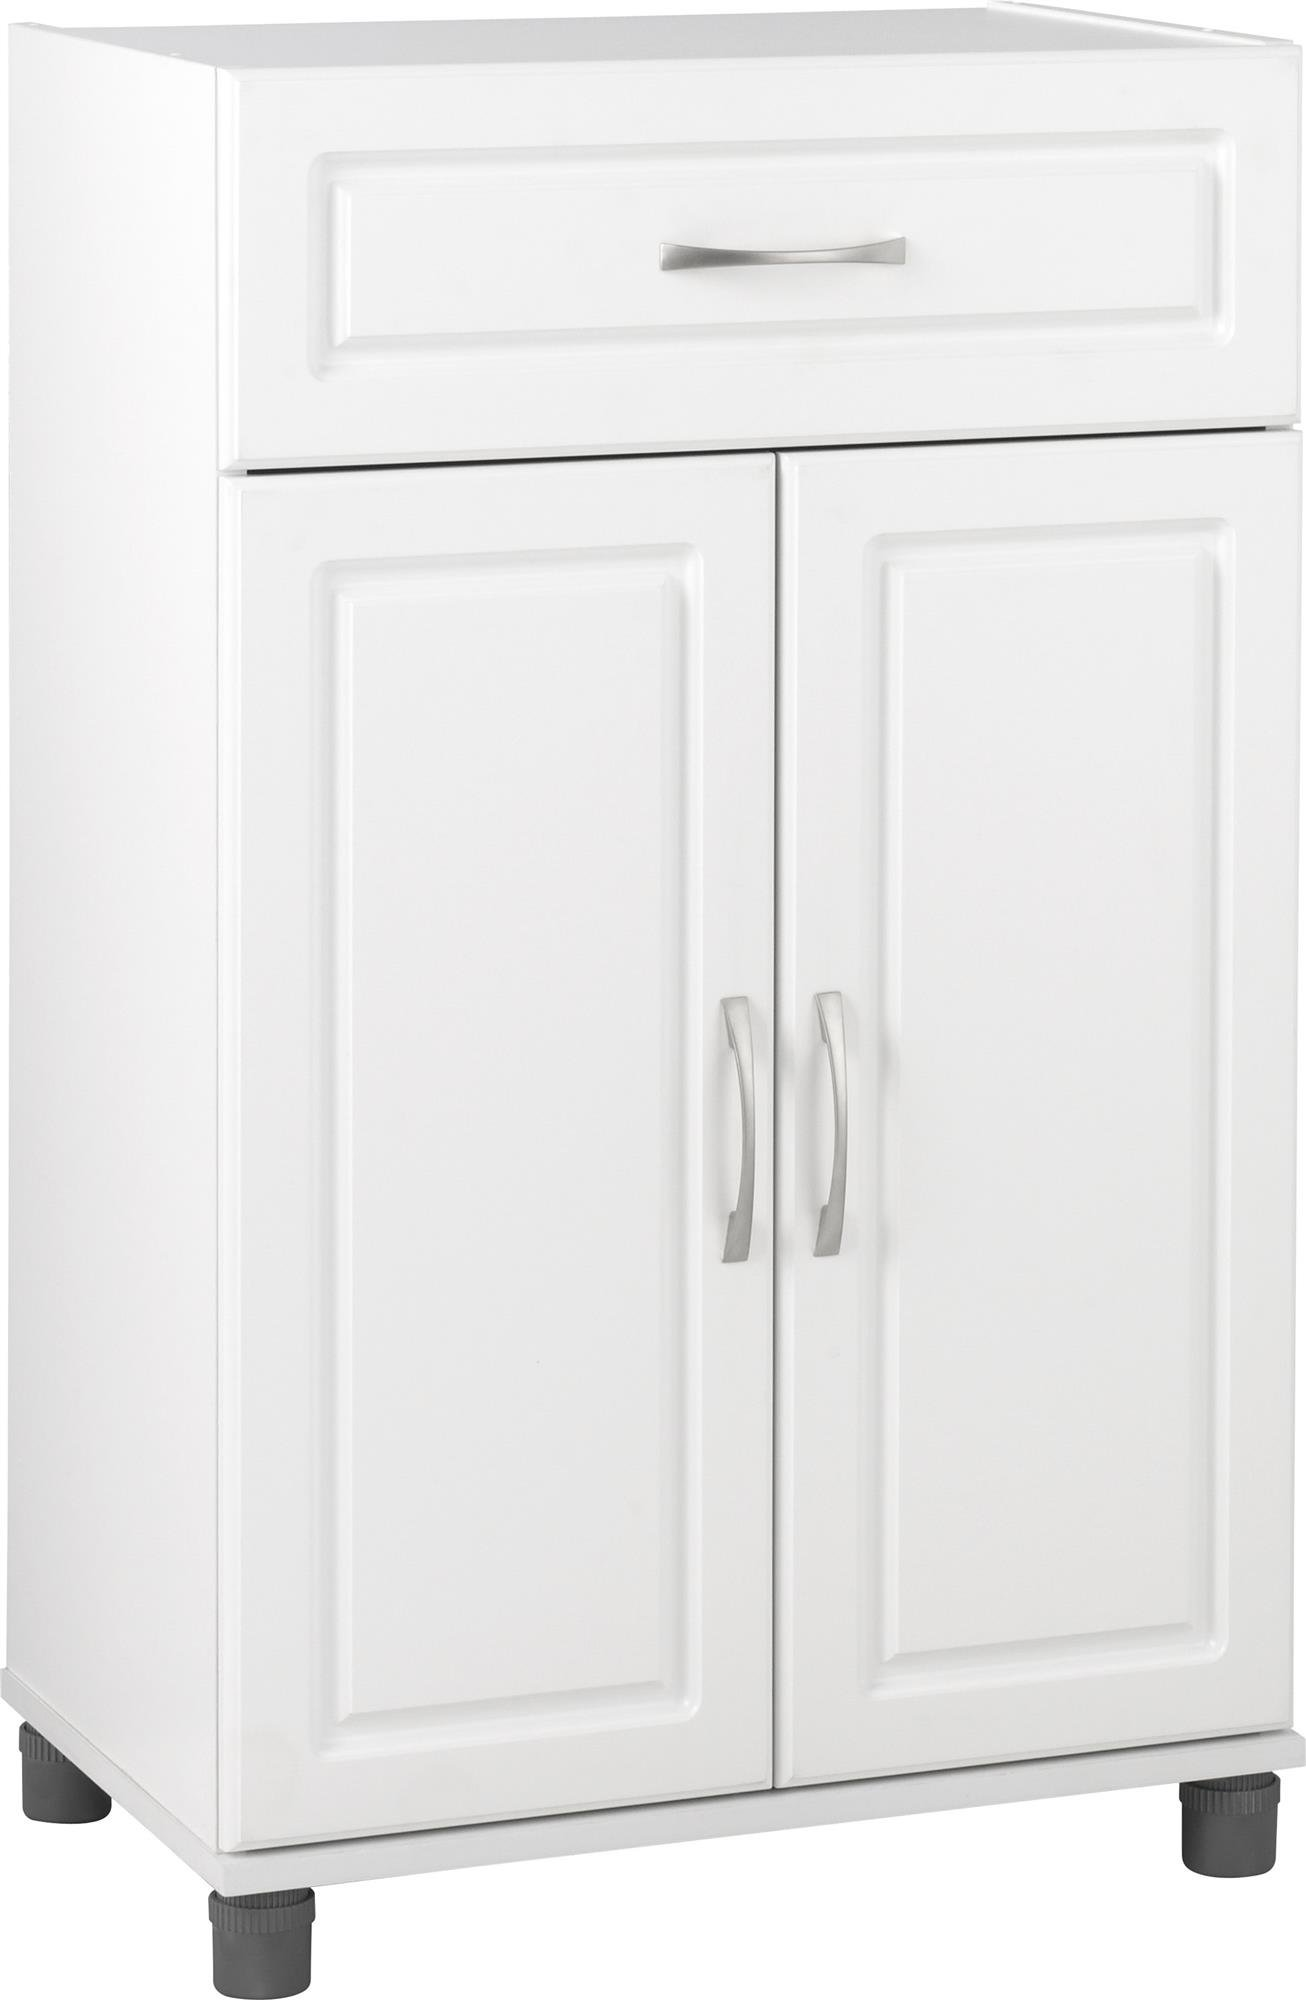 Ameriwood Kendall 1 Drawer/2 Door Base Storage Cabinet 24'' White by SystemBuild